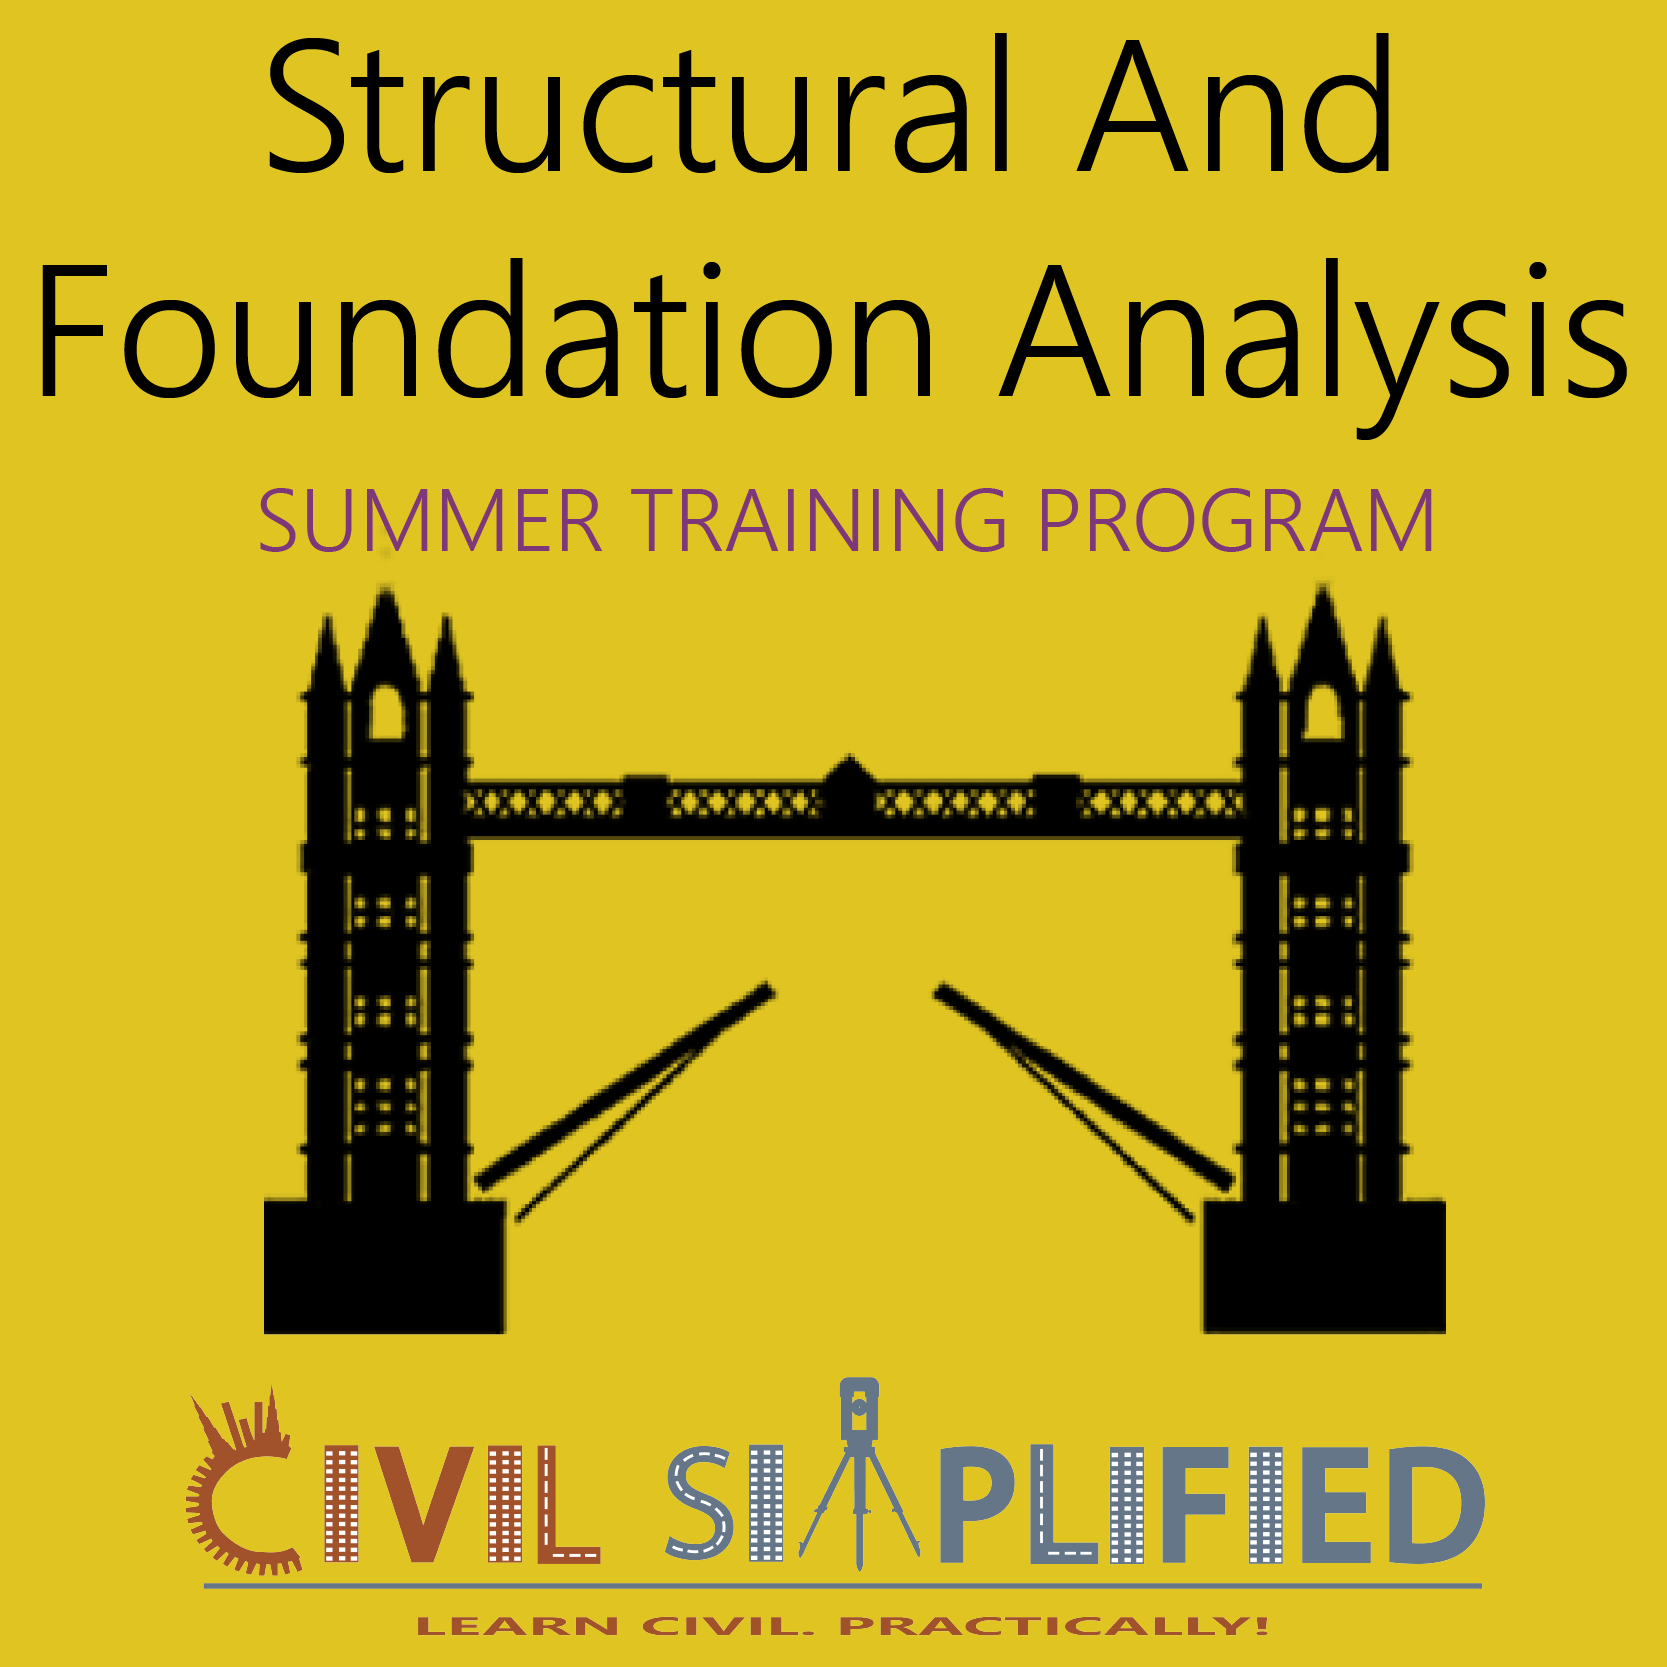 Summer Training Program in Civil Engineering - Structural and Foundation Analysis  at NESTO Institute of finance, T. Nagar